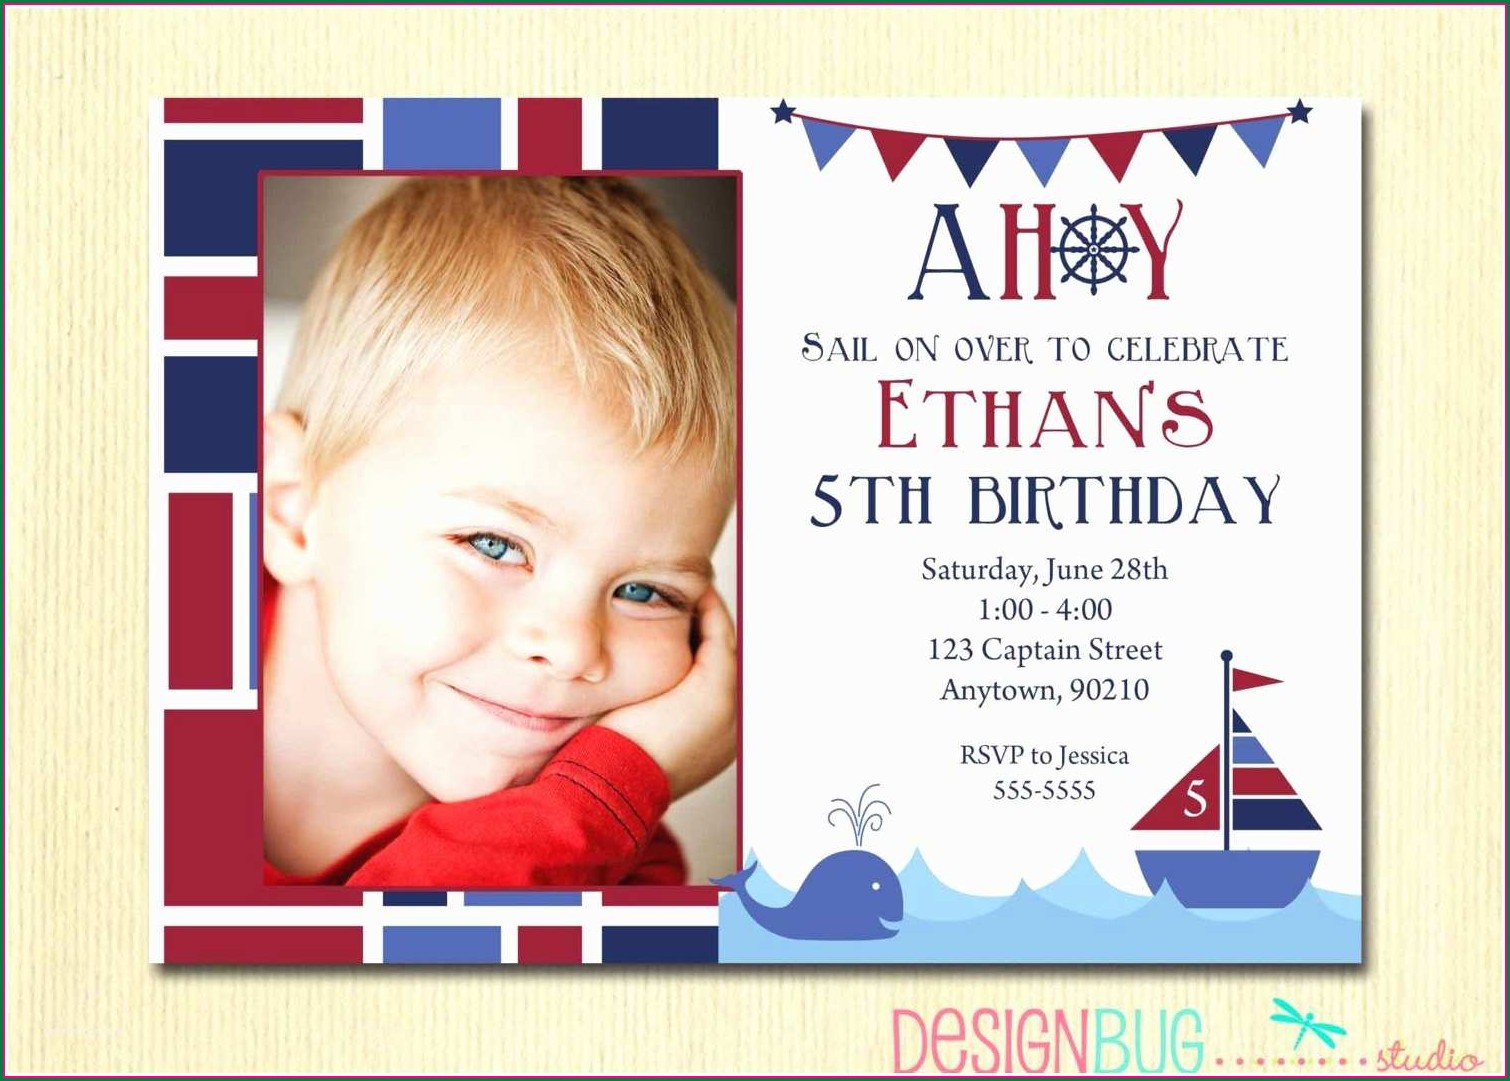 5th Birthday Invitation Message In Hindi